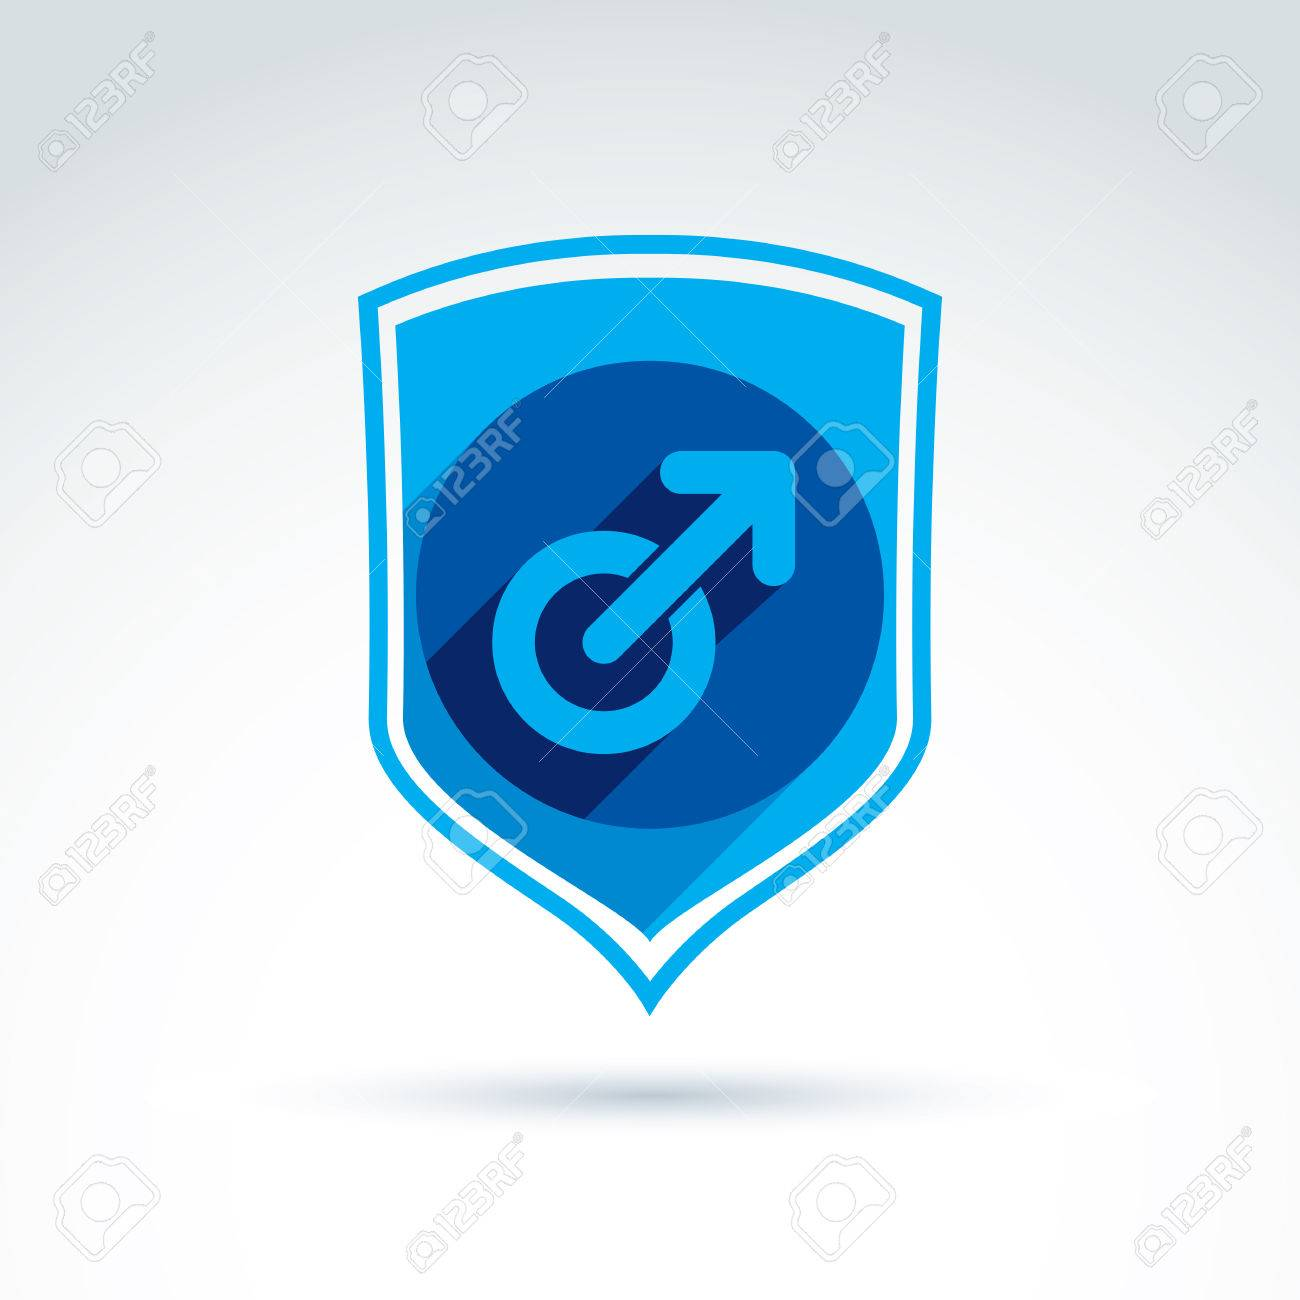 Shield With A Blue Male Sign Male Gender Symbol Gay Or Man Club